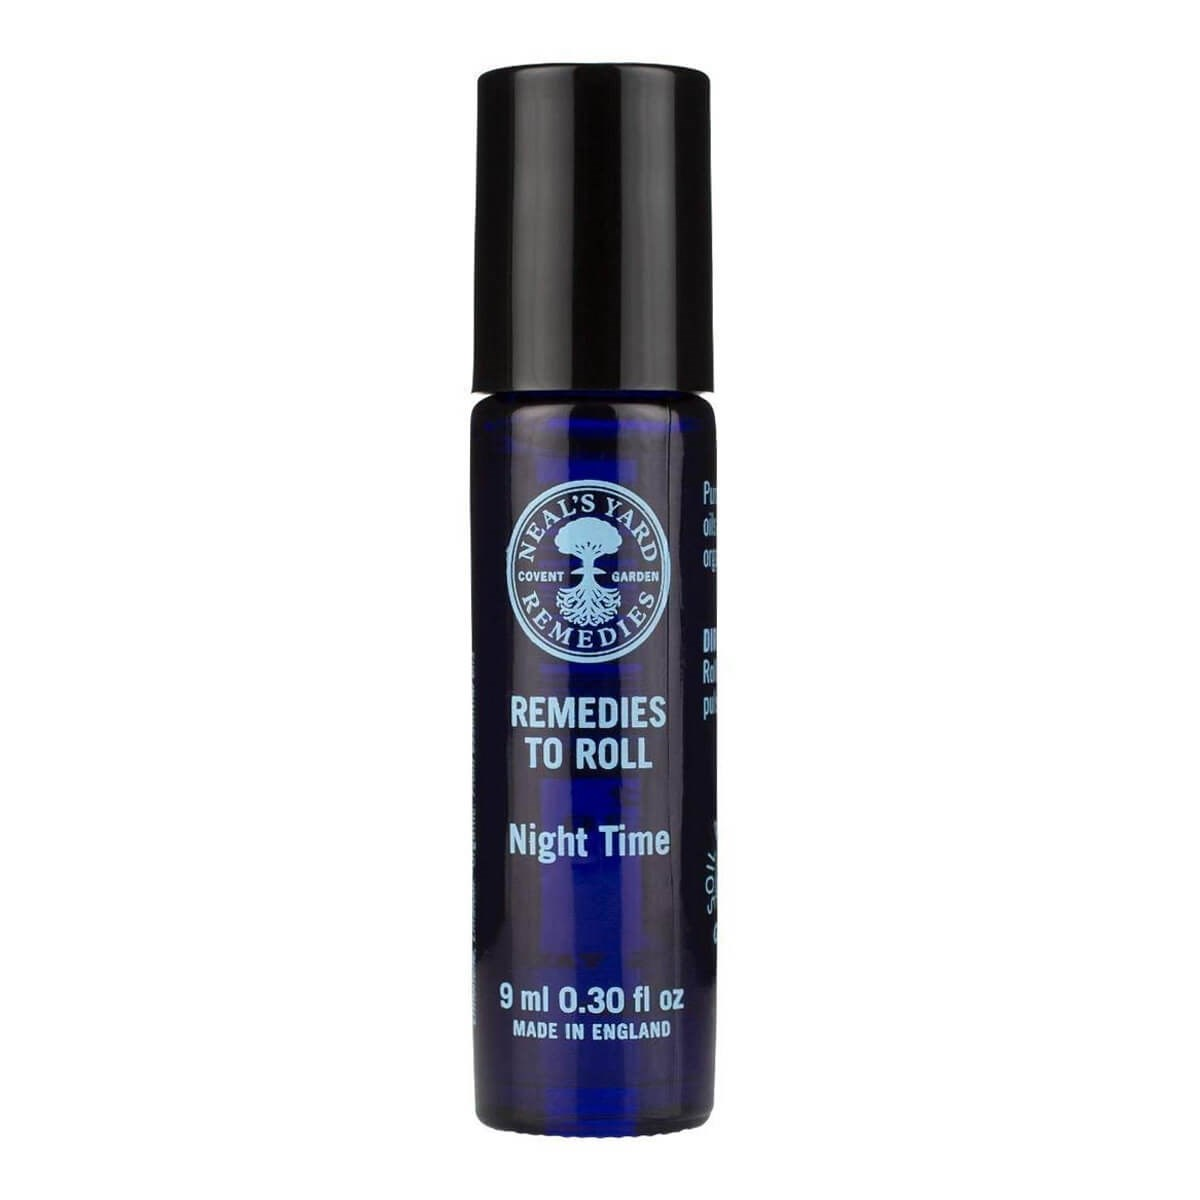 Neal's Yard Remedies Remedies To Roll - Night Time